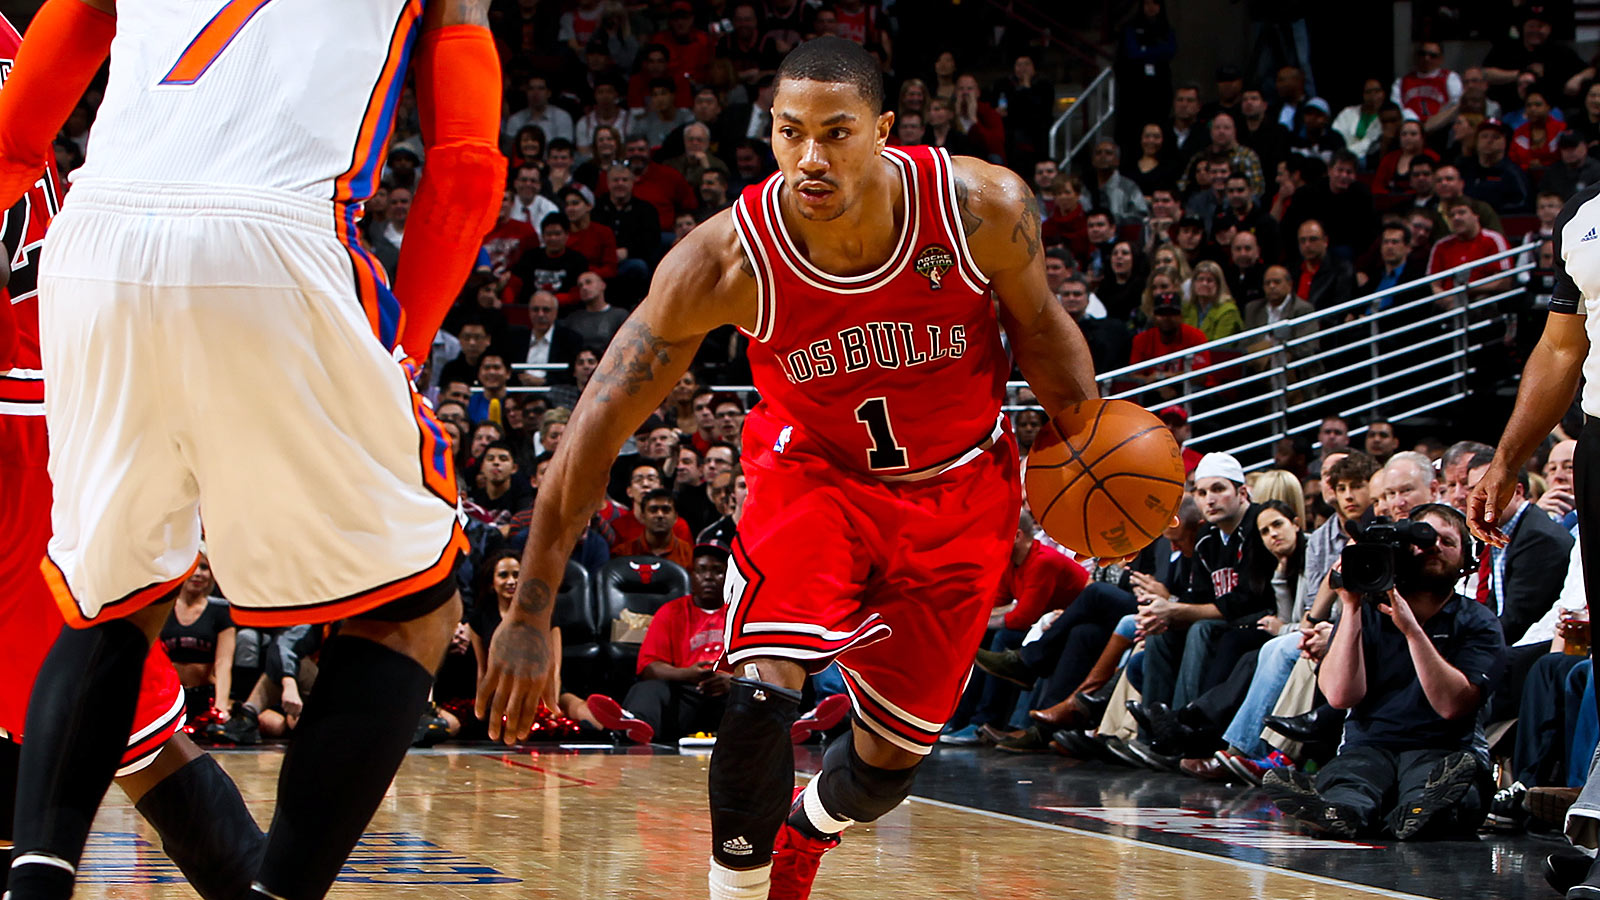 Bulls News: Team Eyes Tuesday For Derrick Rose Return From Injury